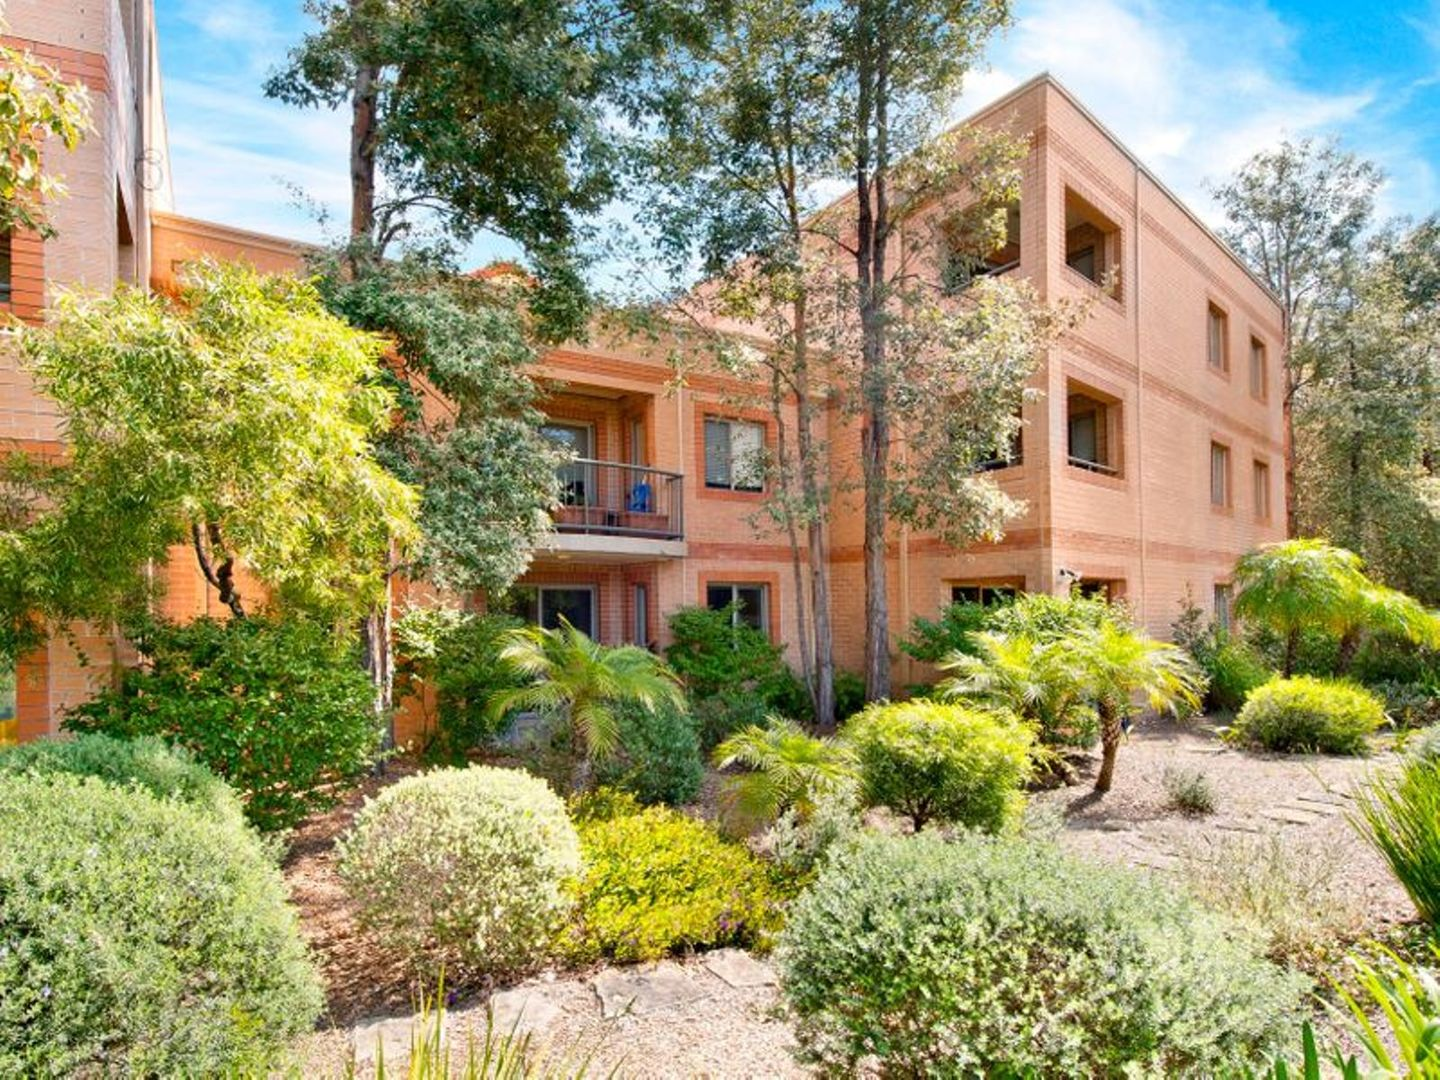 8/506-512 Pacific Highway, Lane Cove North NSW 2066, Image 0